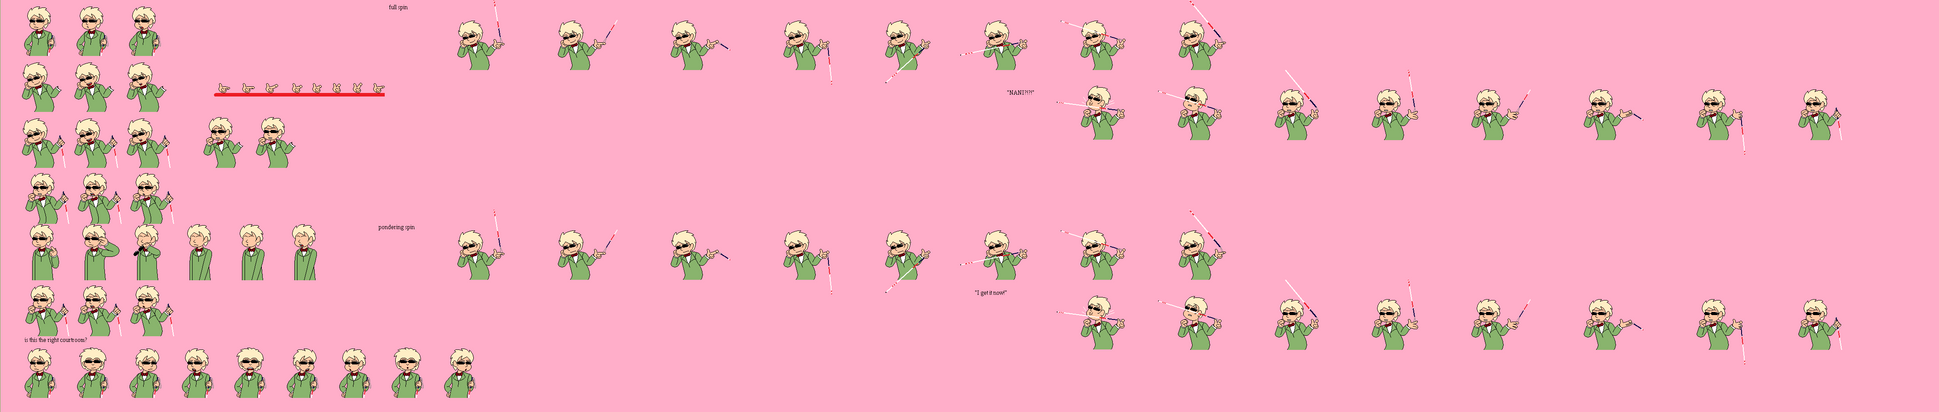 Heeden Ray Robin *Scrapped Sprite Sheet* by RacketFewl